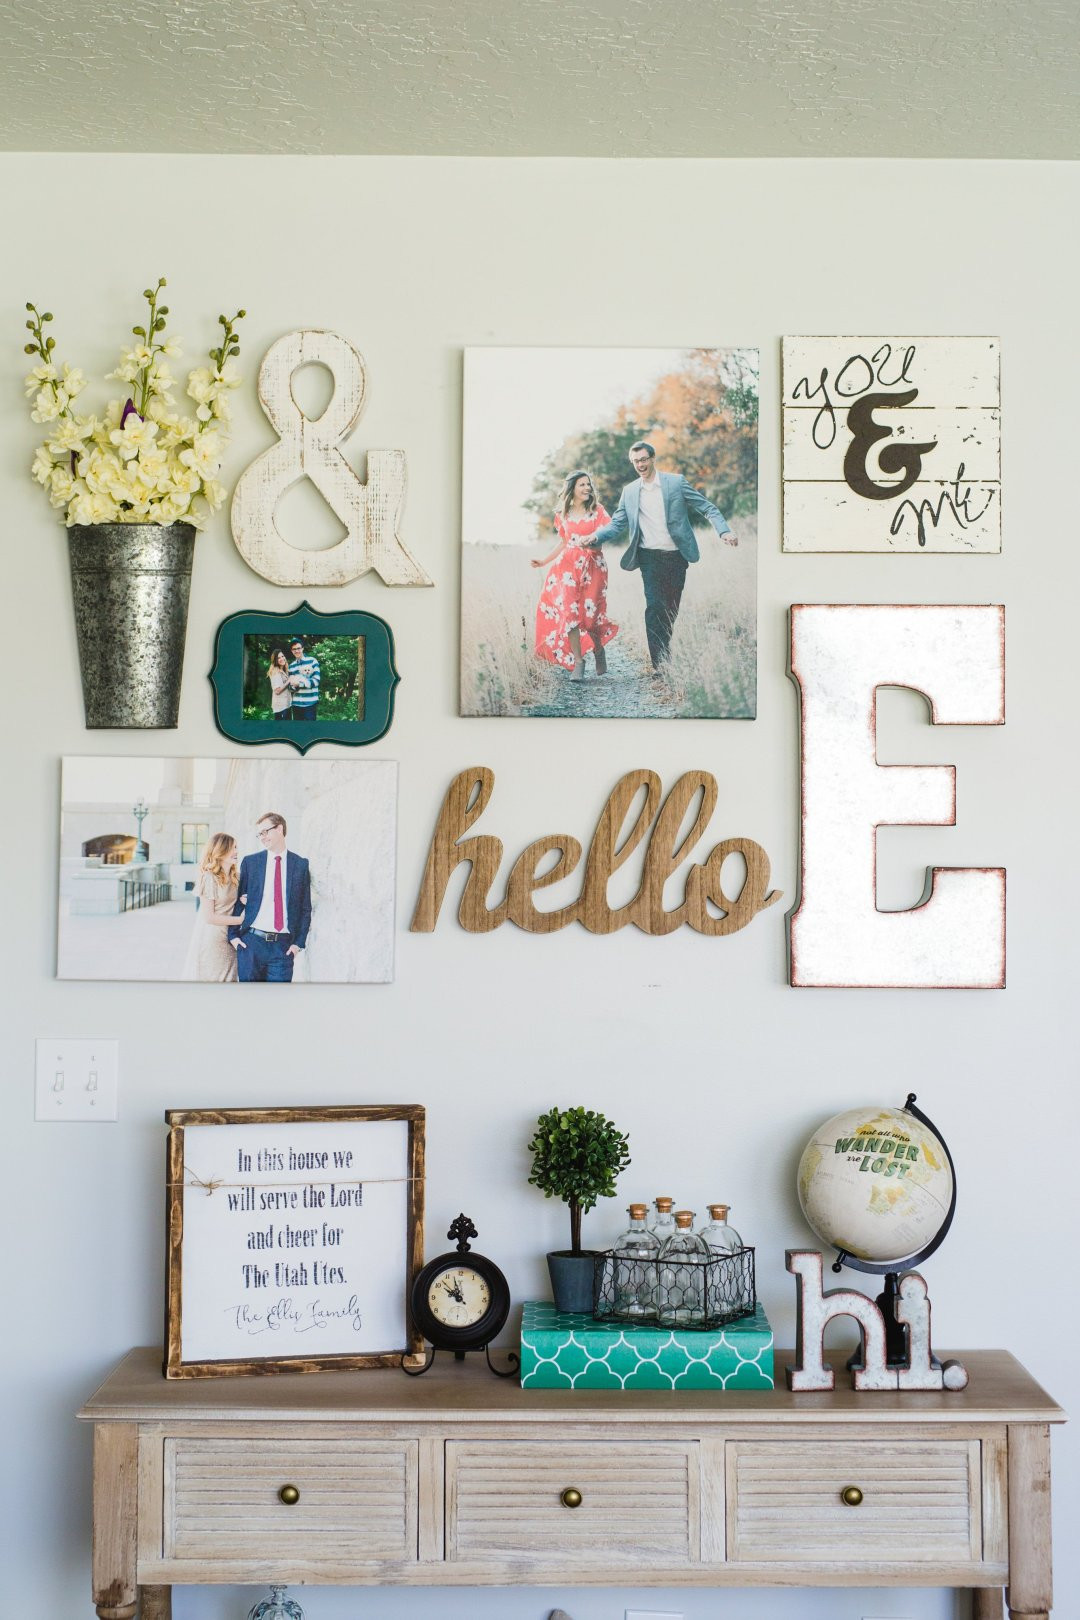 Best ideas about Family Room Wall Decorations . Save or Pin Living Room Gallery Wall Ideas • Everyday Ellis Now.